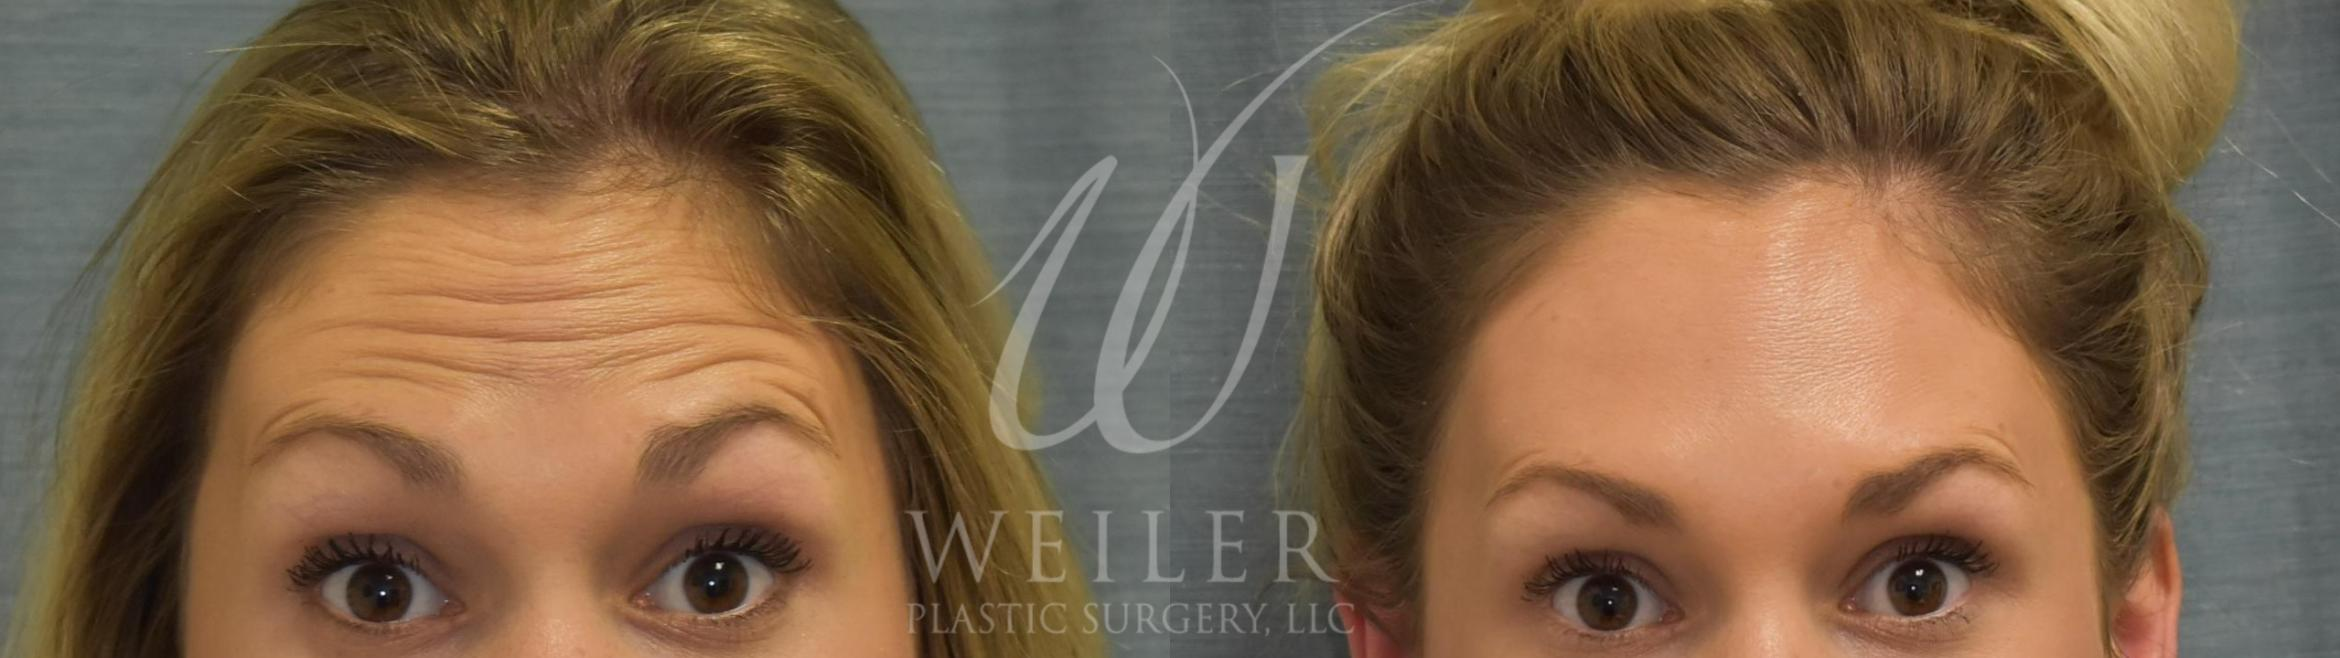 BOTOX® Cosmetic Before & After Photo | Baton Rouge, Louisiana | Weiler Plastic Surgery